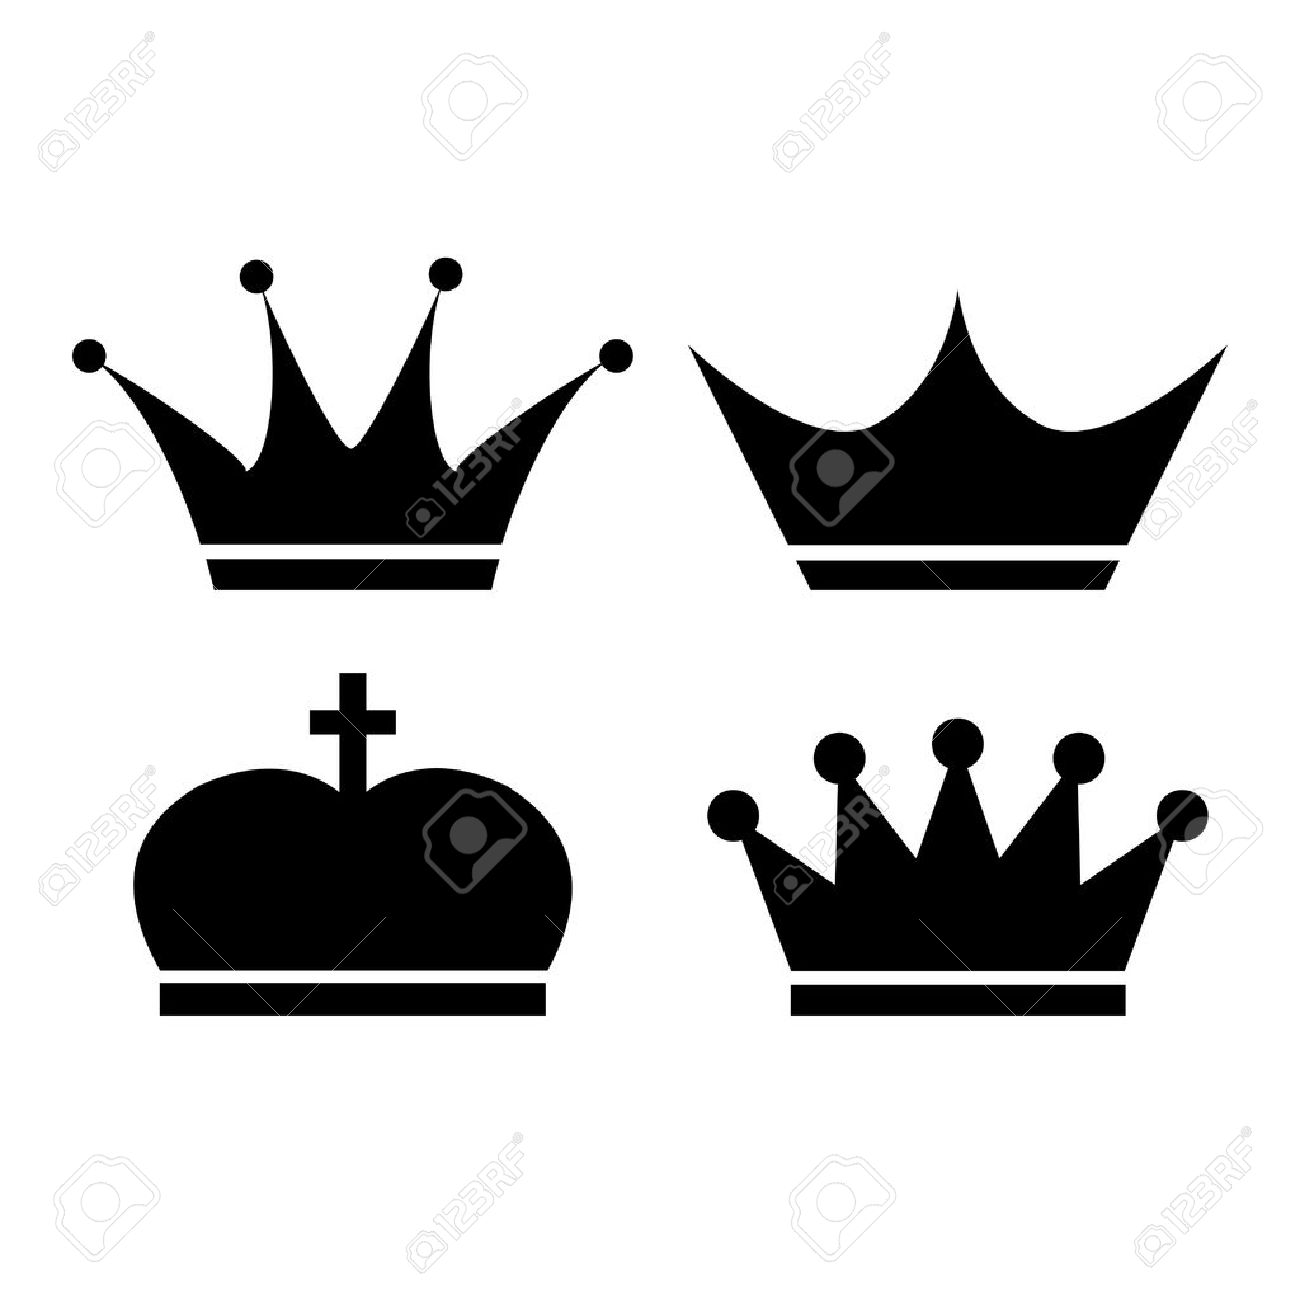 crown vector icon royalty free cliparts vectors and stock rh 123rf com crown vector clipart crown vector file